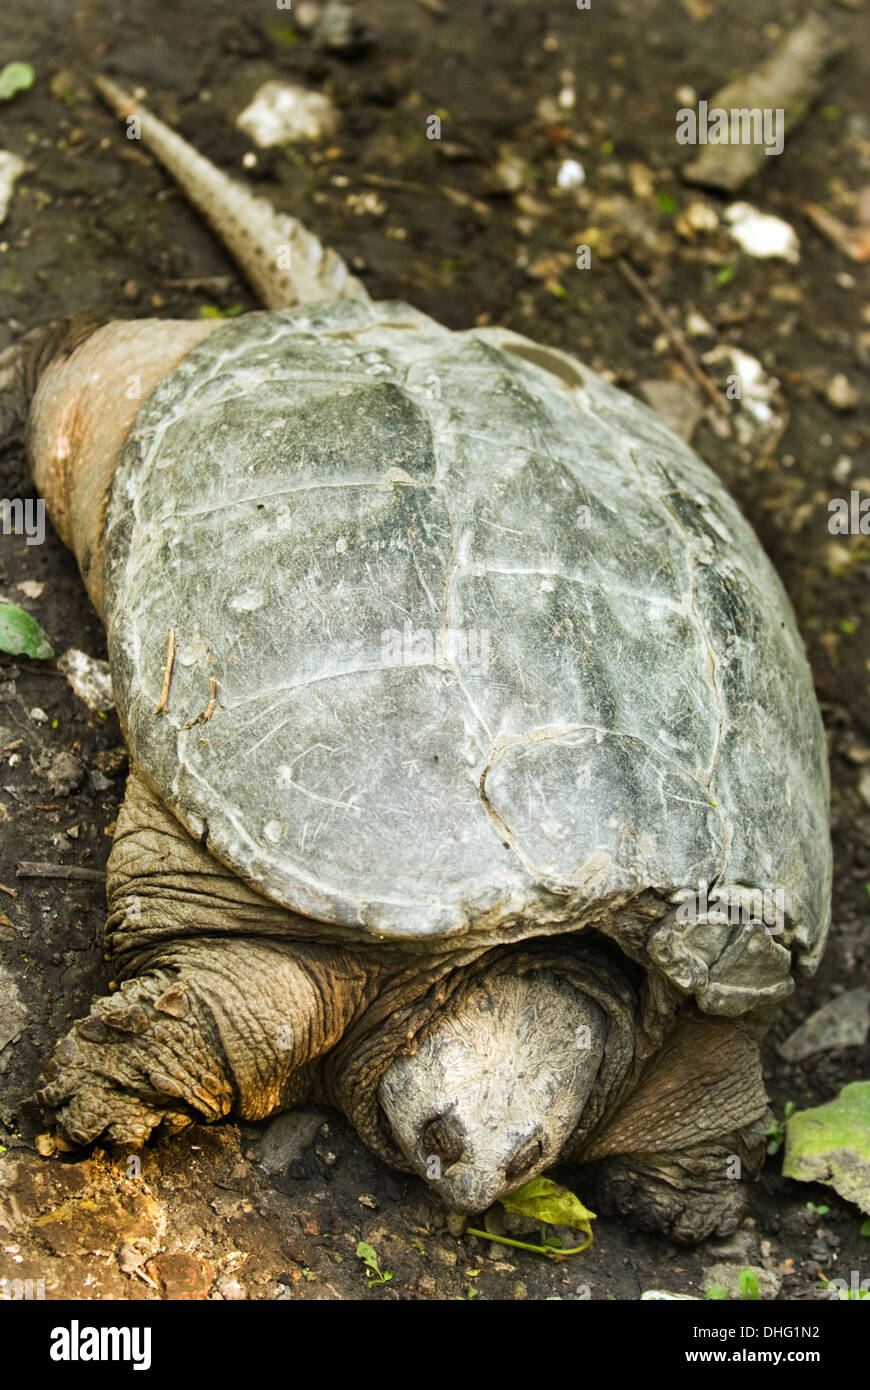 Large, old turtle on the bank along the Chicago River. - Stock Image